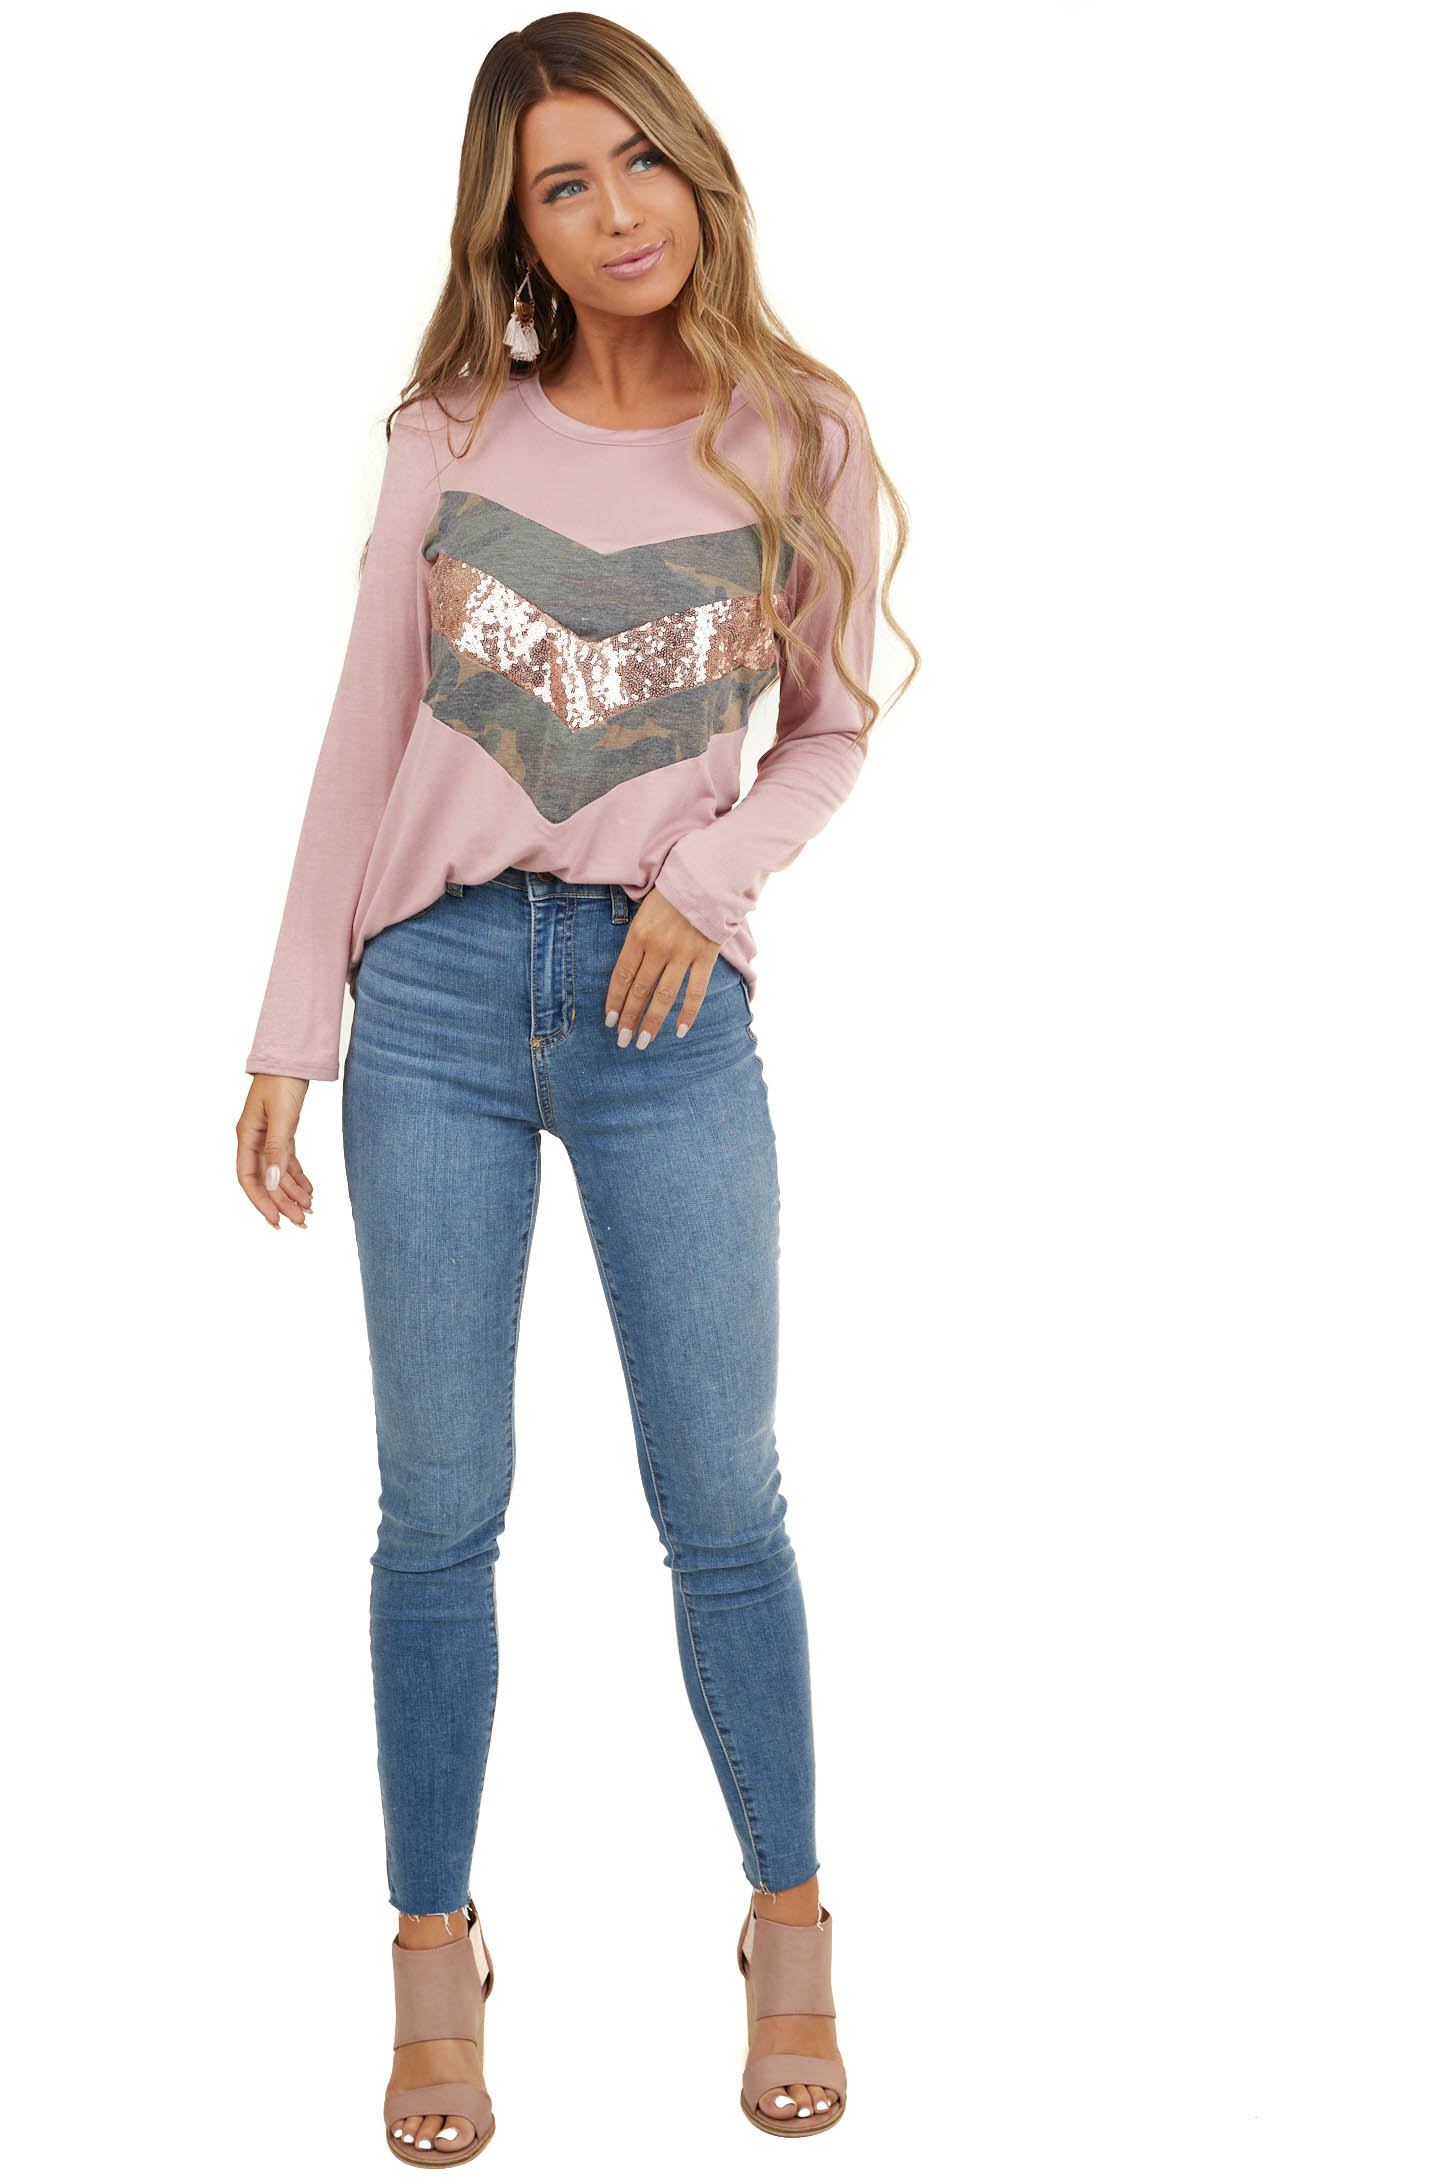 Dusty Blush Long Sleeve Top with Sequin and Camo Details